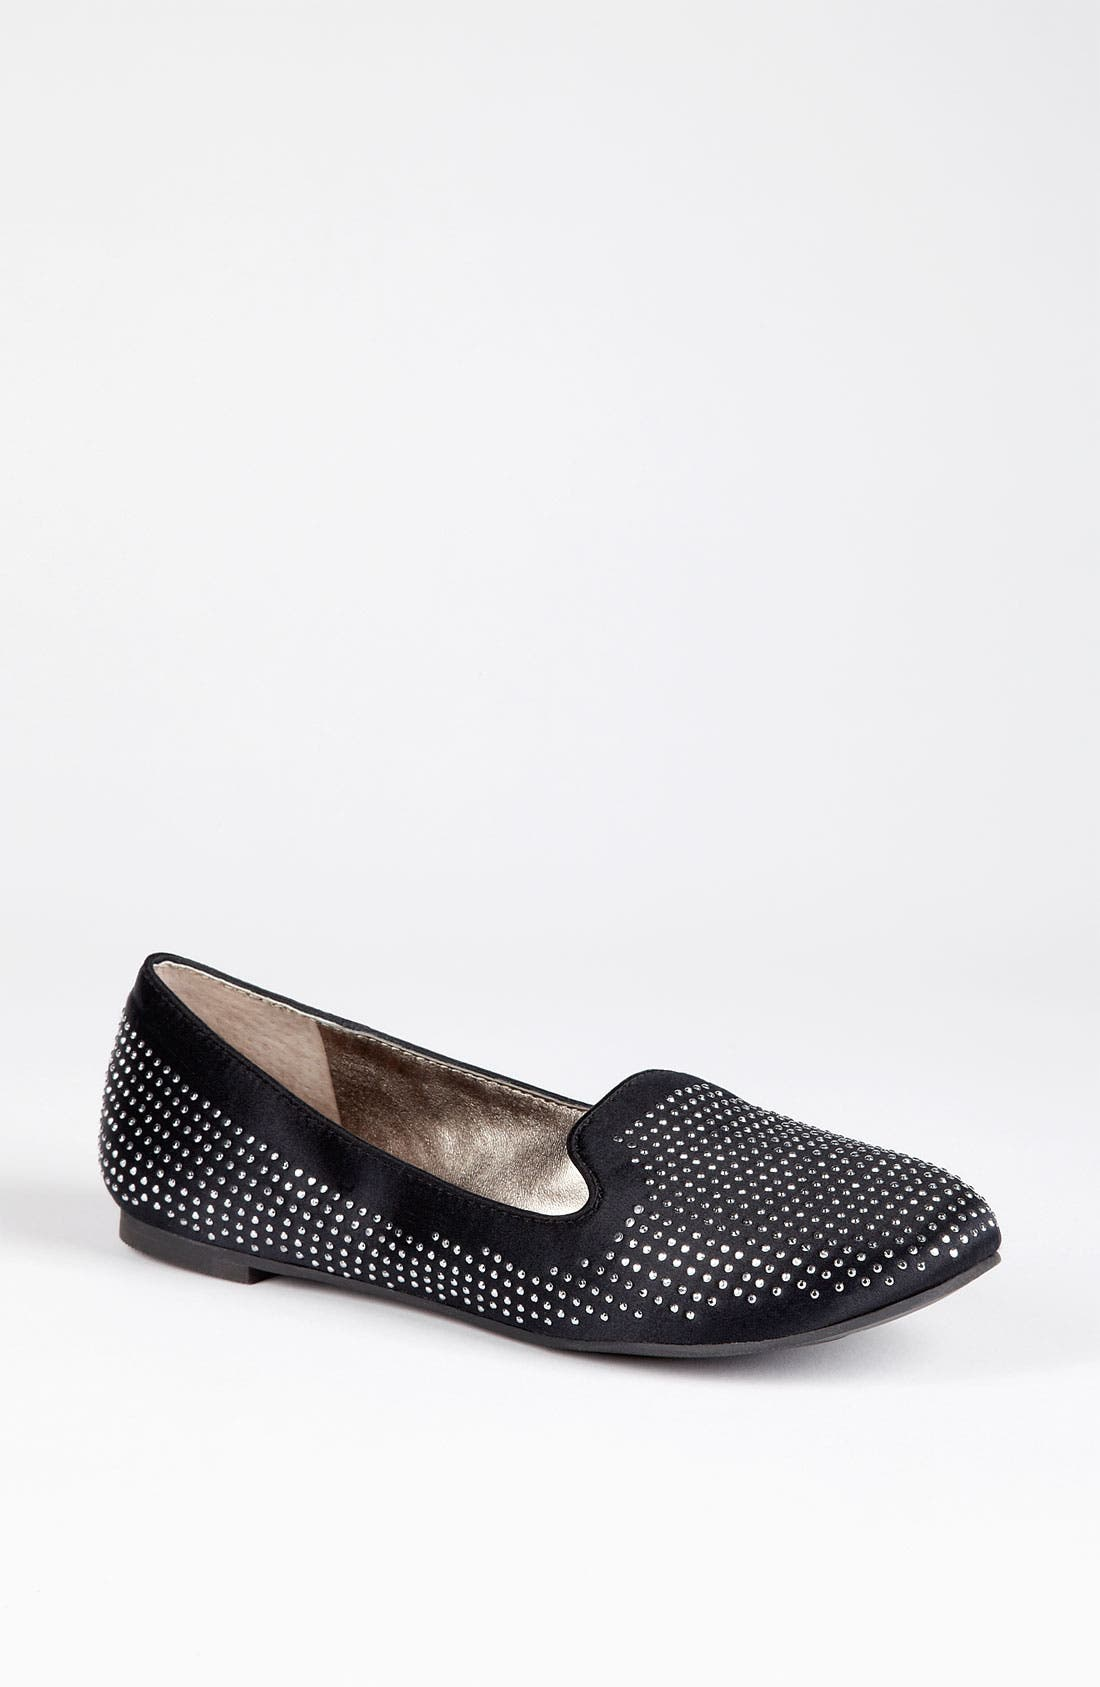 Alternate Image 1 Selected - Sole Society 'Camila' Flat